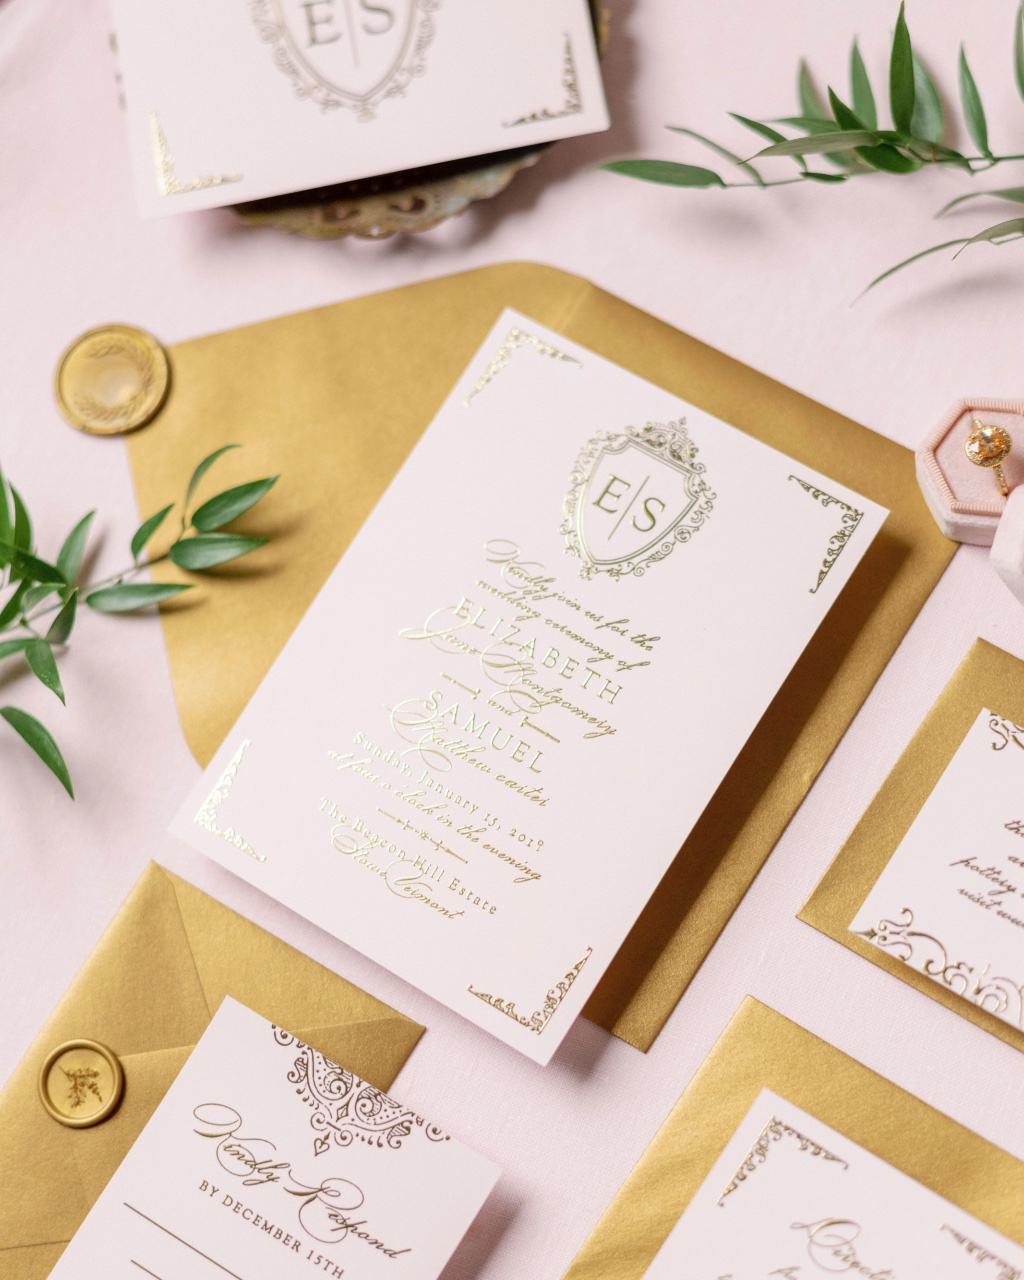 Keep things beautifully classic with a Gold Foil Scrolling monogram wedding invitation!